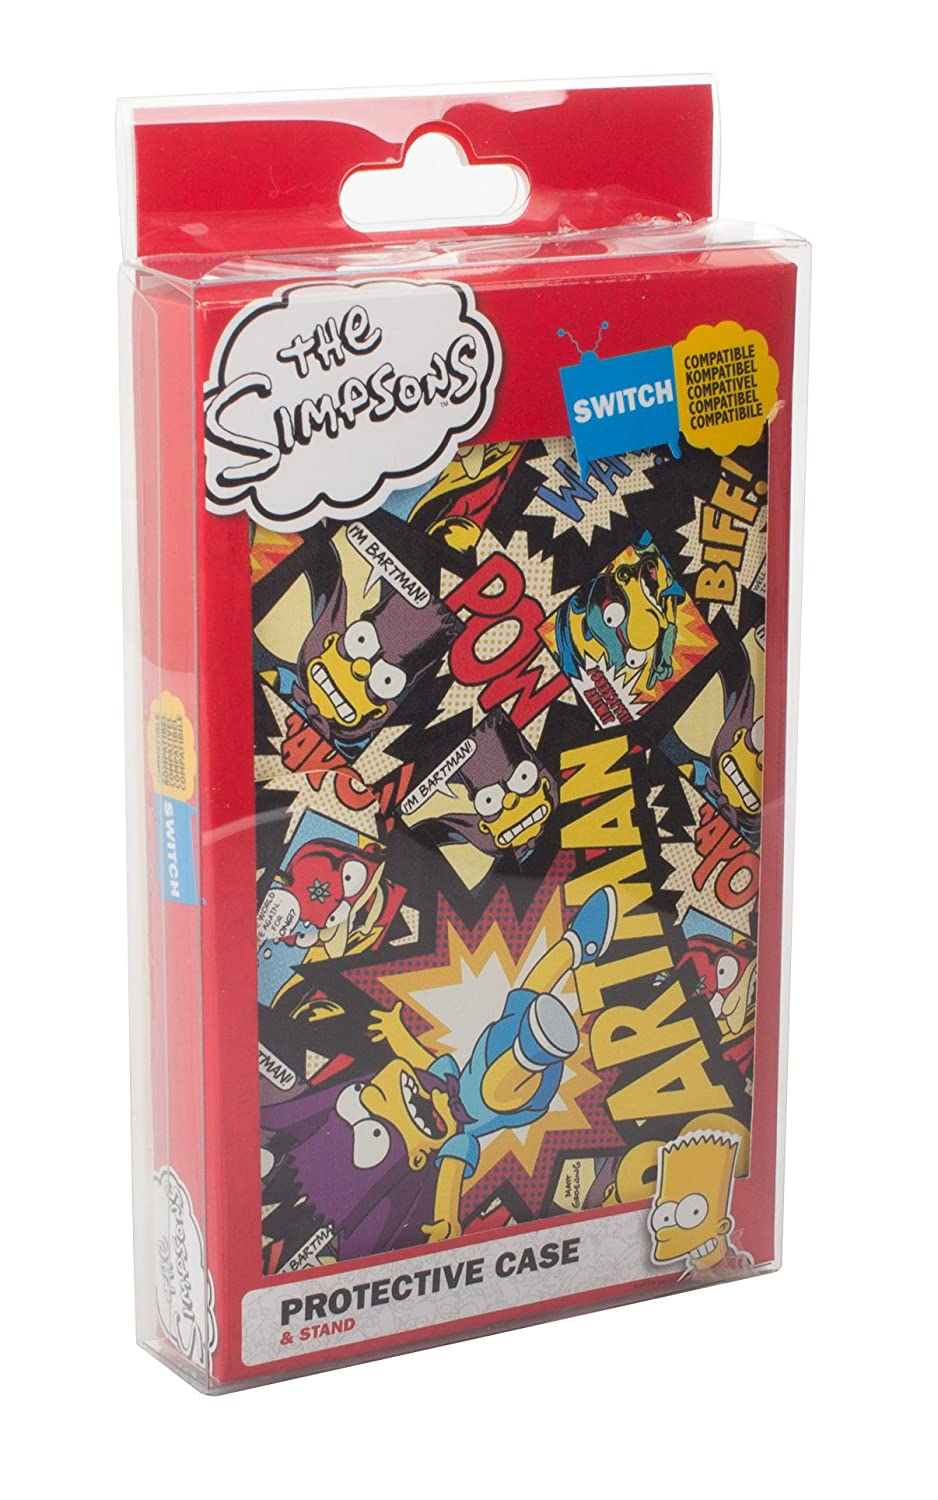 Amazon.com: The Simpsons Switch 2-in-1 Portable Protective ...